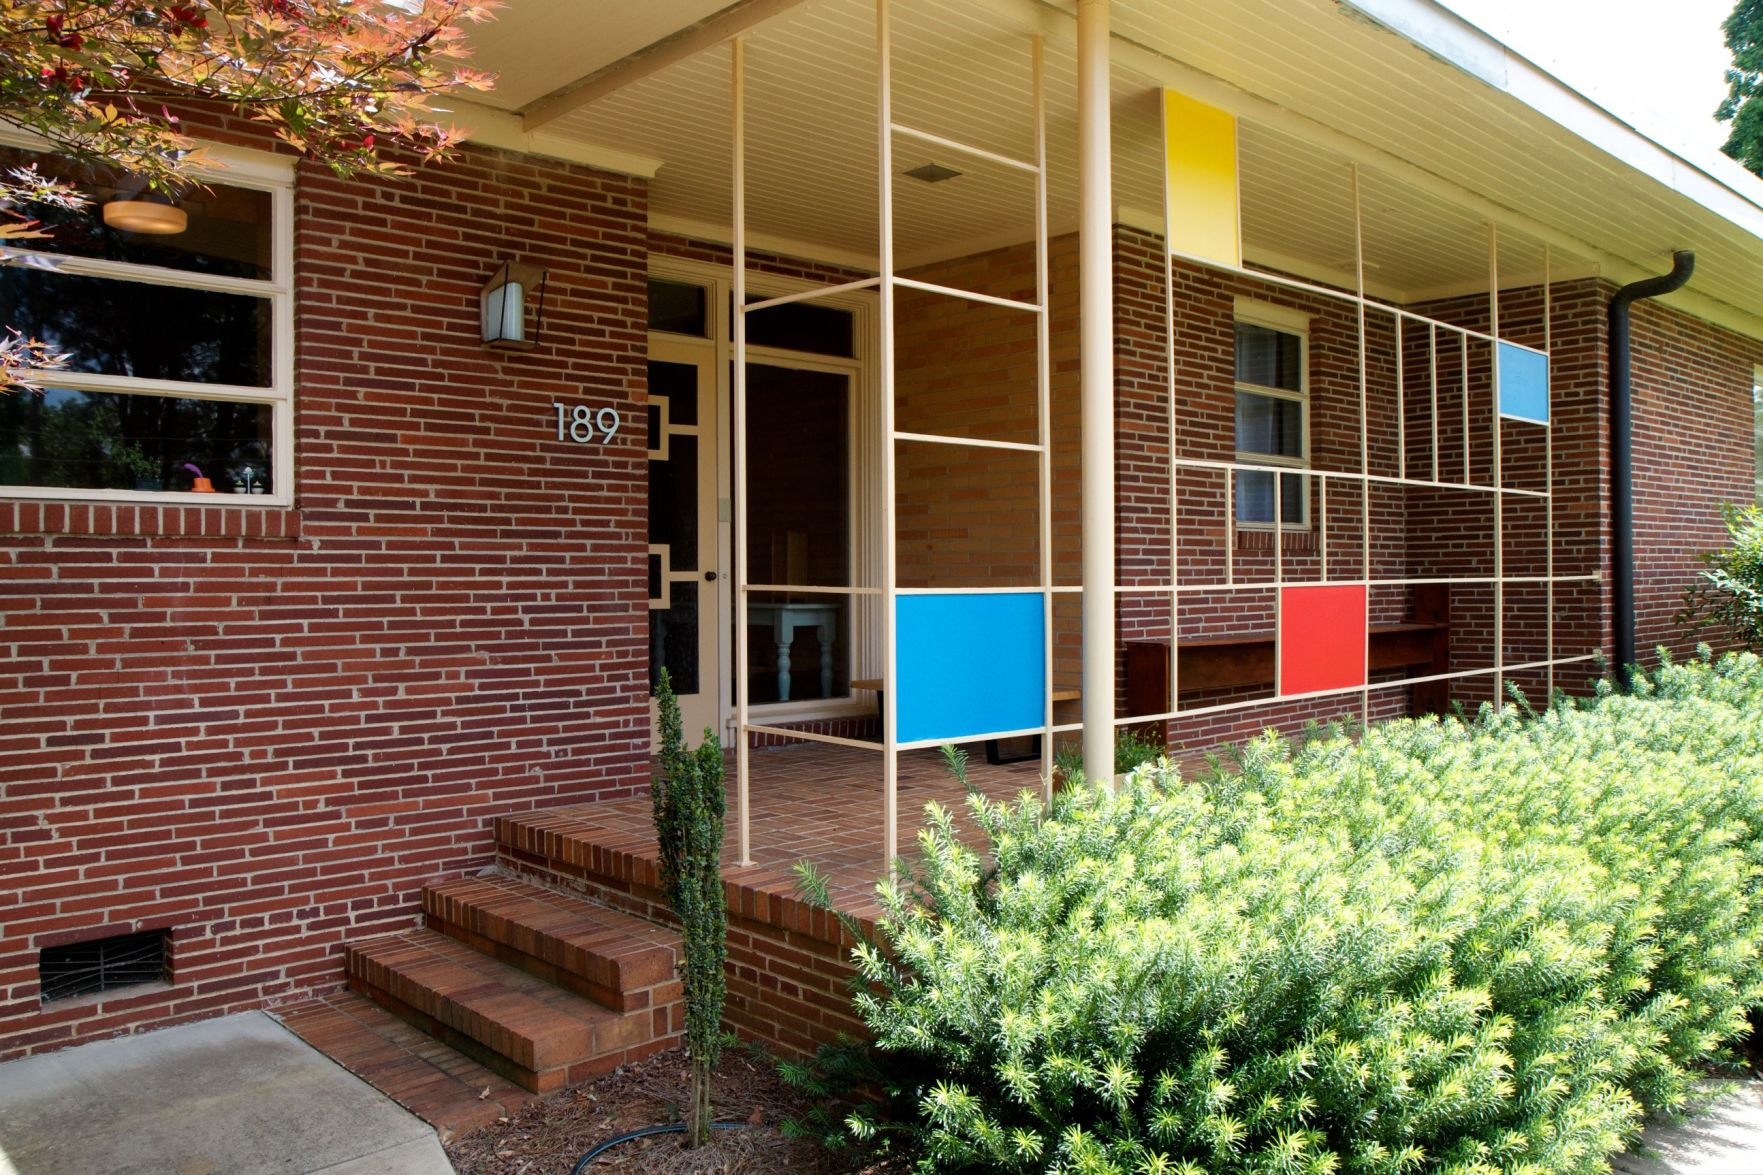 Home Sweet Home: ACHF To Hold Mid Century Tour Of Modern Homes In  Celebration Of 50th Anniversary